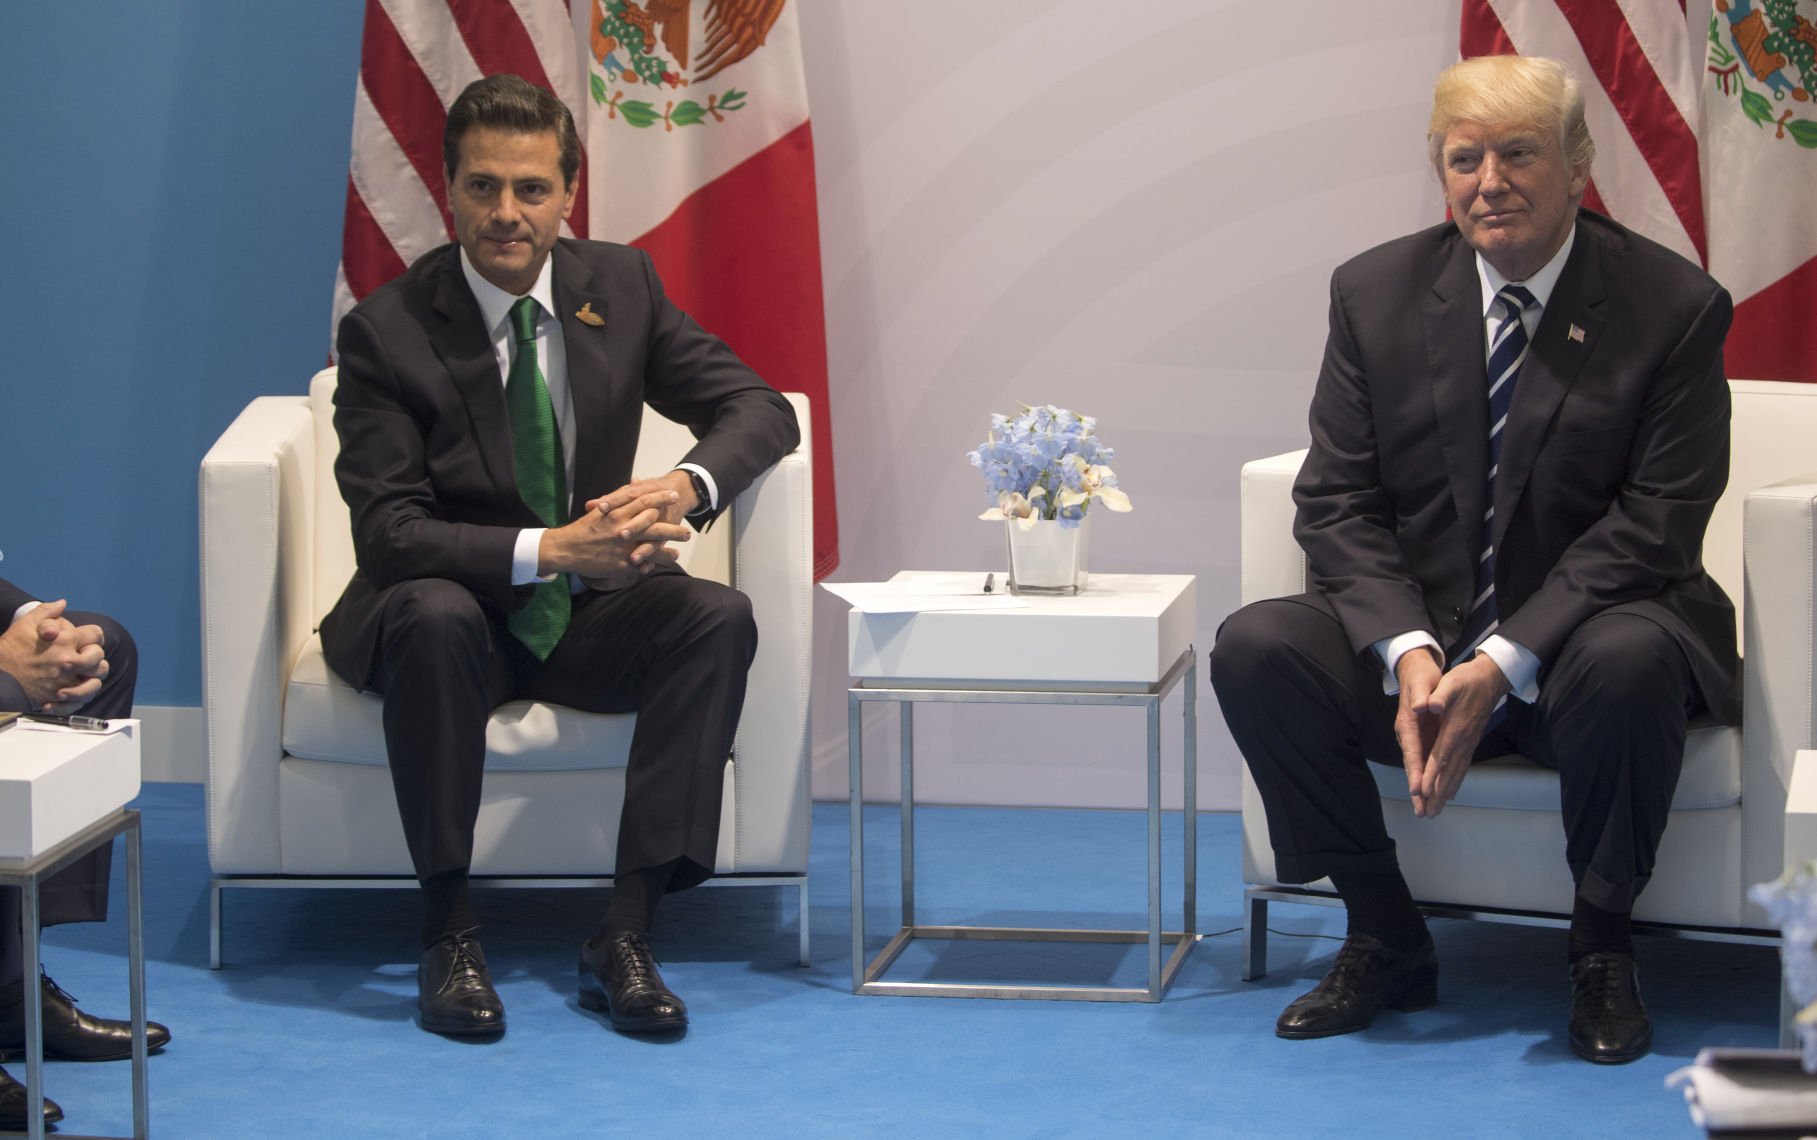 'Mexico to defend dignity in ties with US'